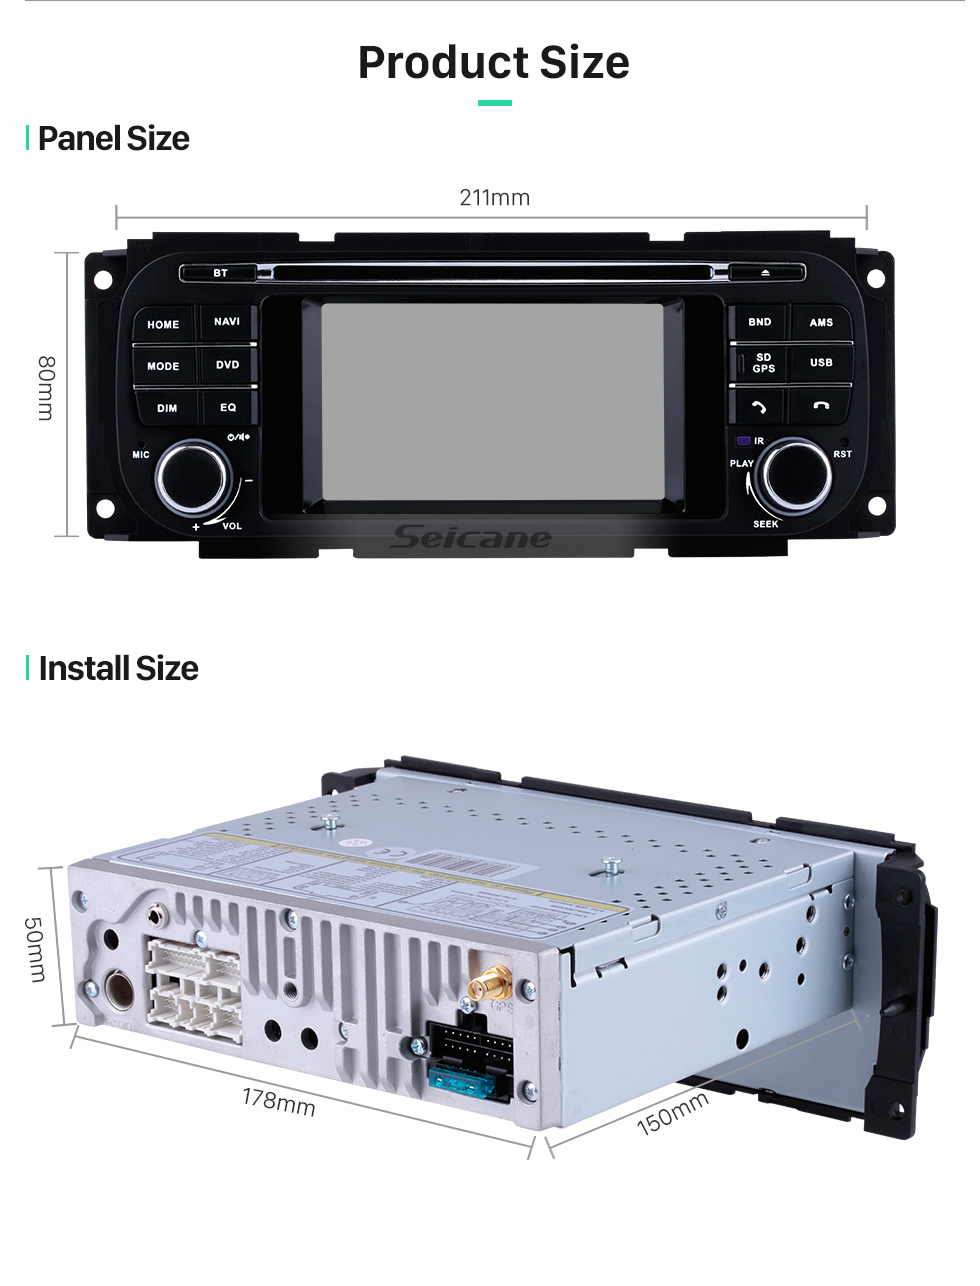 Seicane OEM Bluetooth DVD Player Radio For 2006 2007 2008 Jeep Commander Compass With 3G WiFi TV GPS Navigation System TPMS DVR OBD Mirror Link Rearview Camera Video Touch Screen